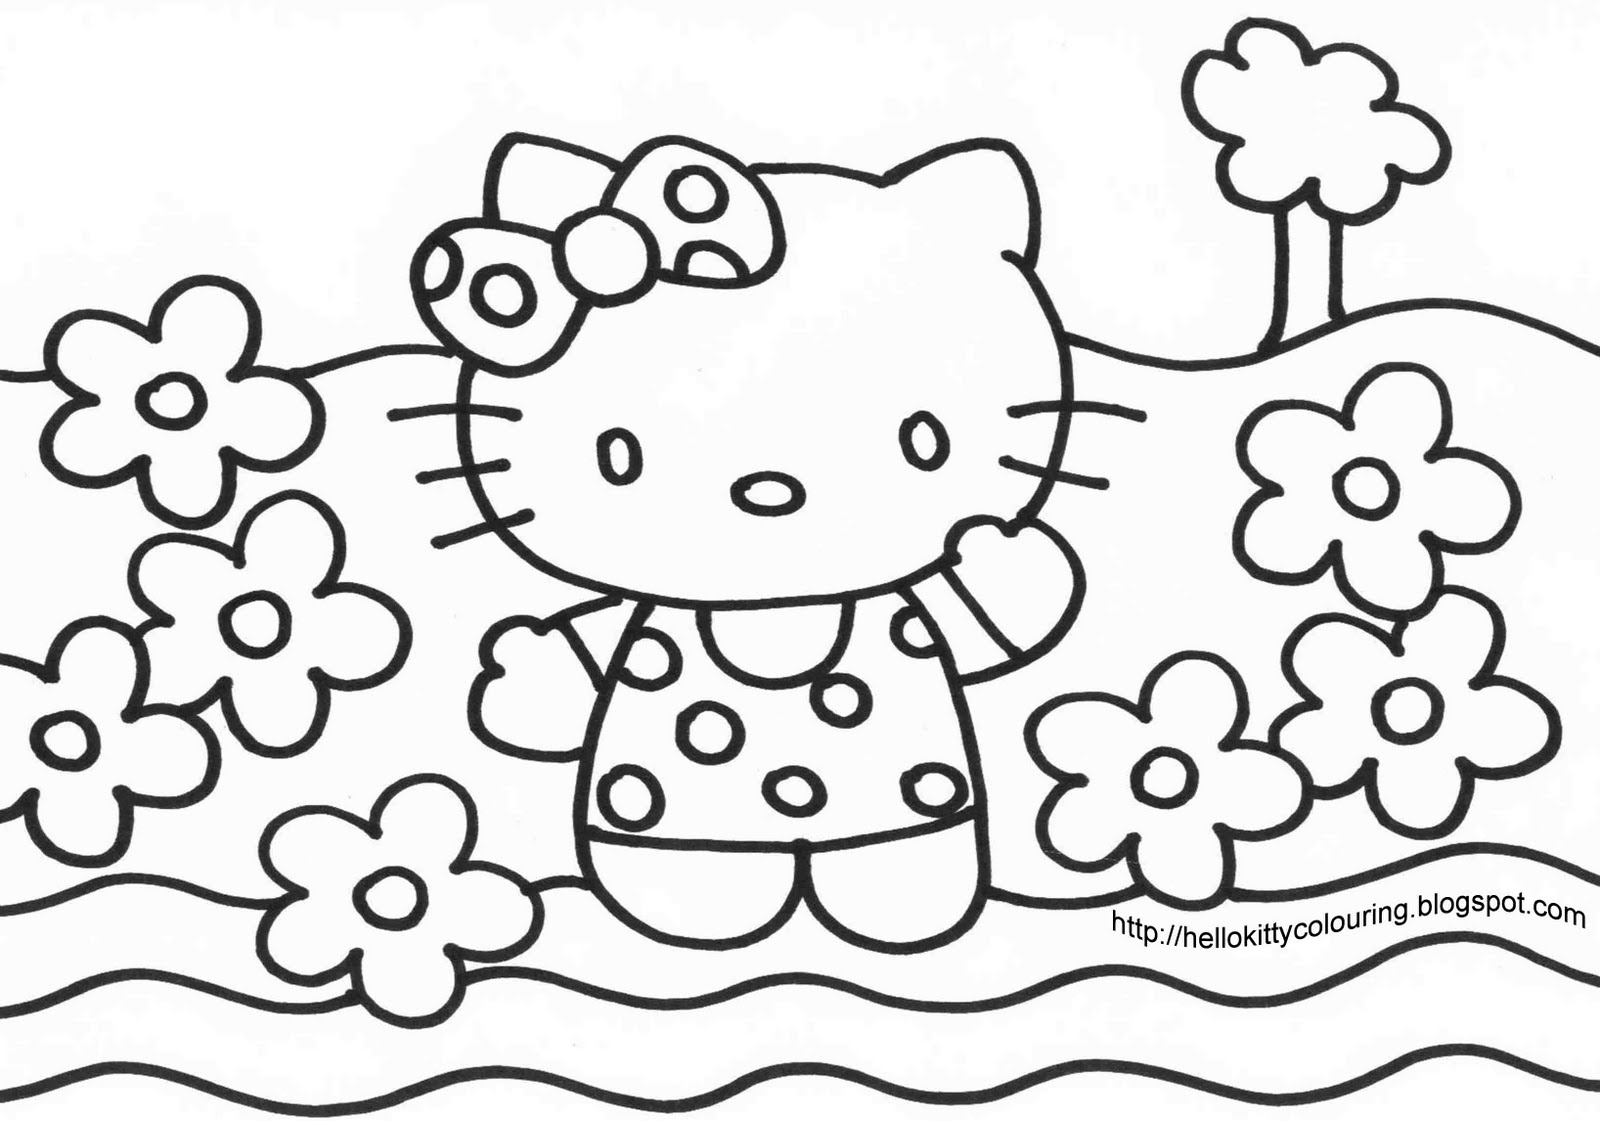 It is a graphic of Sassy Hello Kitty Coloring Images